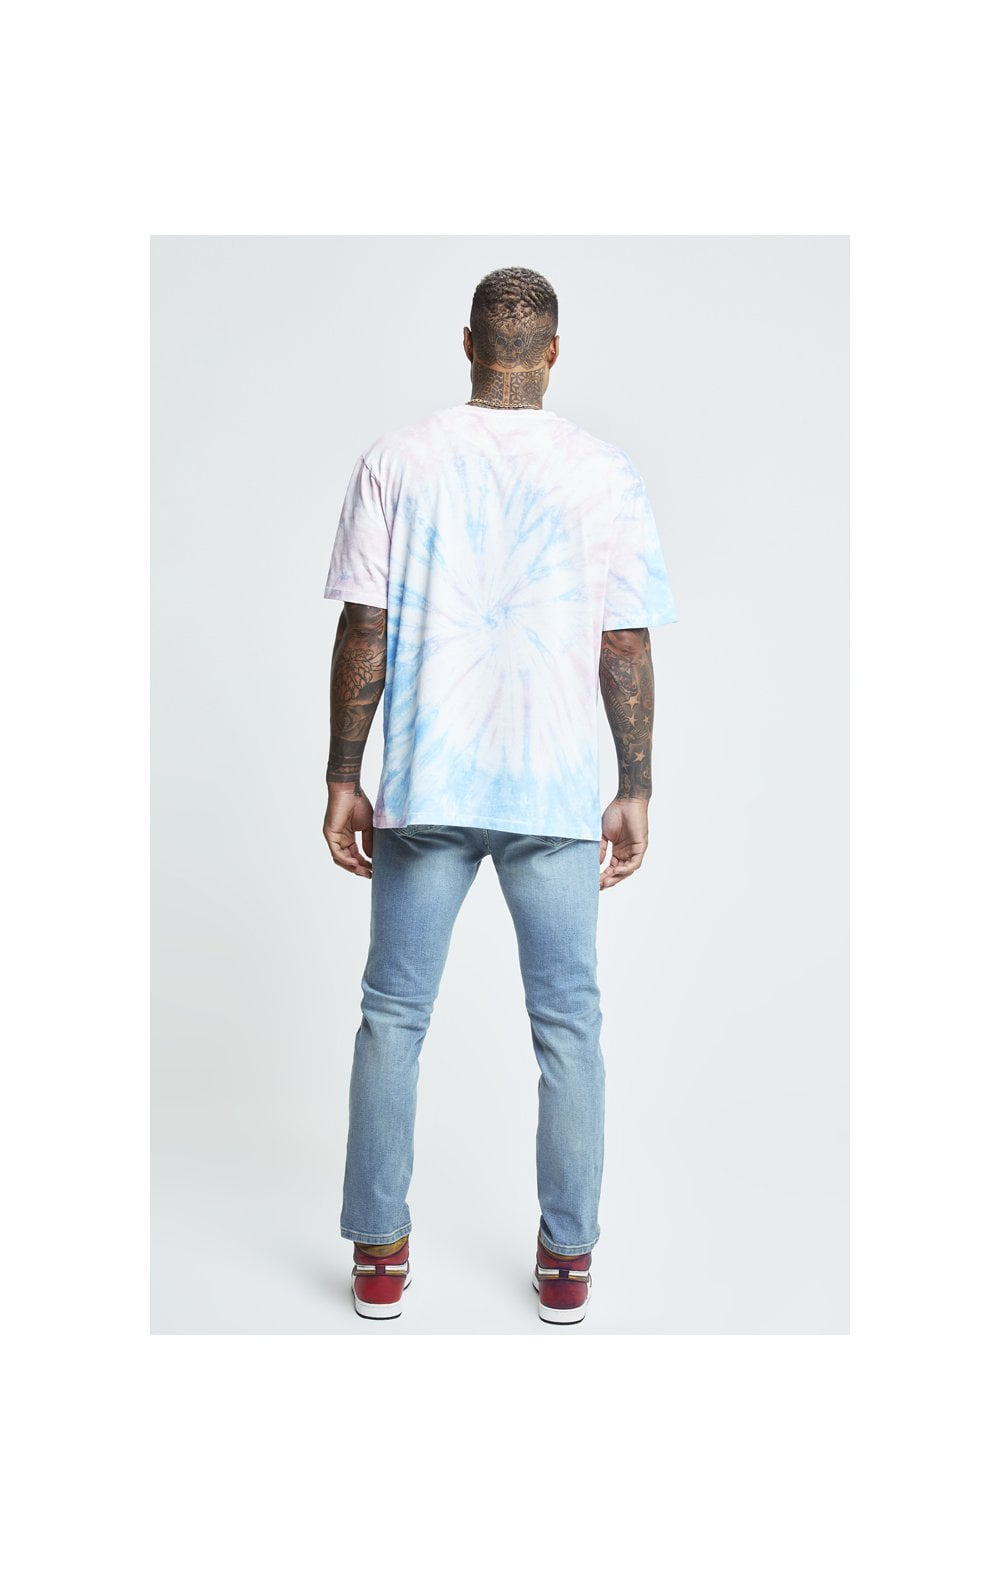 Load image into Gallery viewer, SikSilk X Steve Aoki S/S Oversize Essential Tee – Baby Pink & Blue Tie Dye (5)